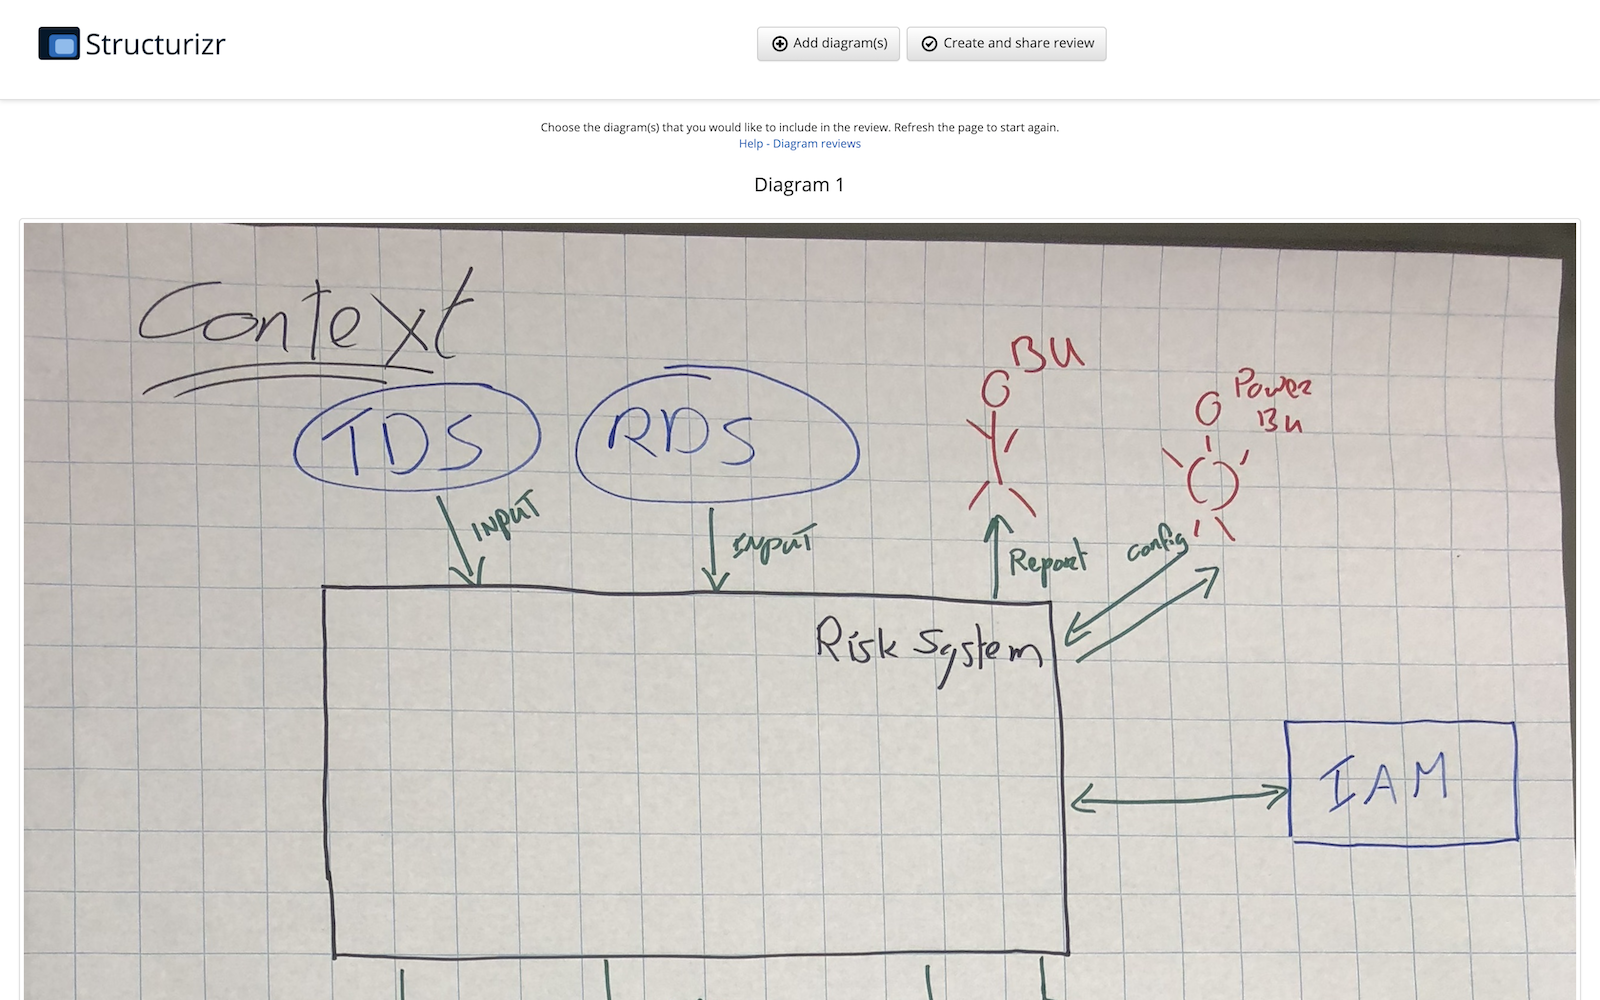 Creating a review from other diagrams